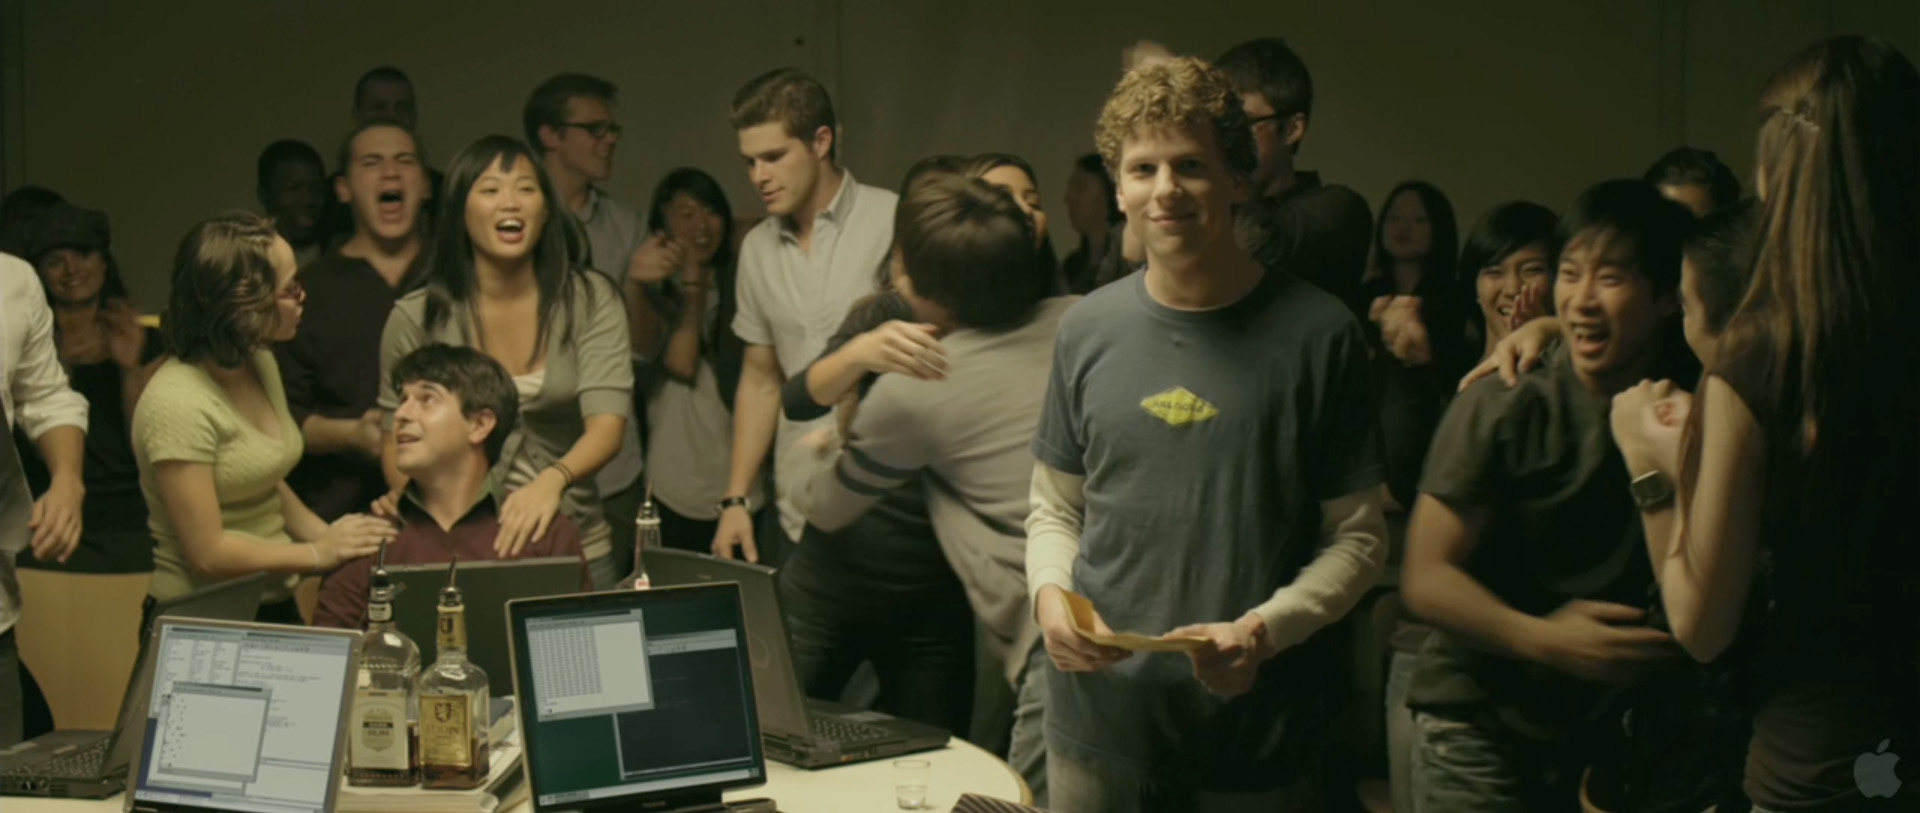 the social network movie essay Why mark zuckerberg should like the social network  this makes the social network more than just a movie about facebook, it makes it the first movie about silicon valley it means facebook .